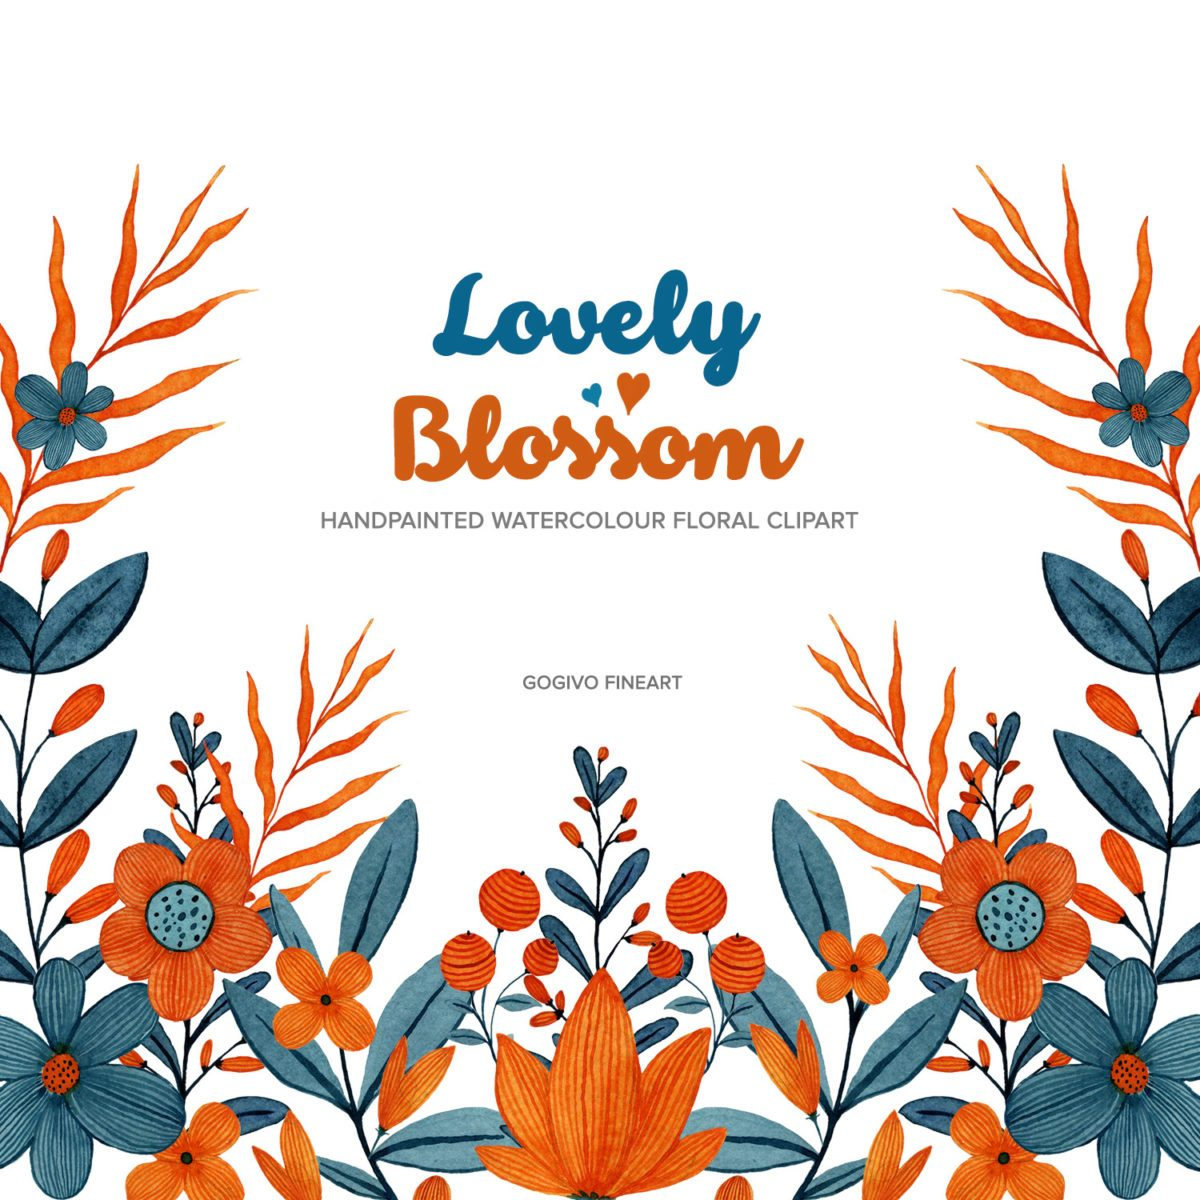 Lovely blossom watercolor floral clipart